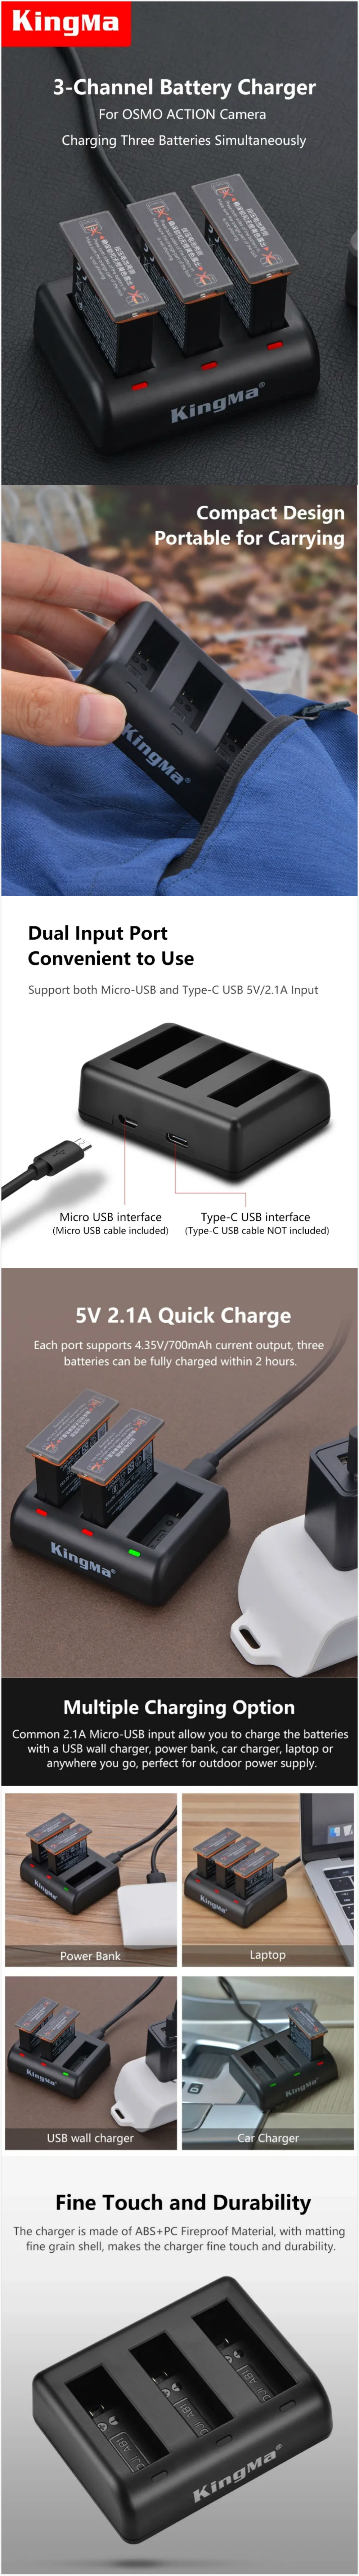 KingMa BM055 3-Channel 5V/2.1A Micro USB / Type-C Triple Charger For DJI OSMO ACTION Camera